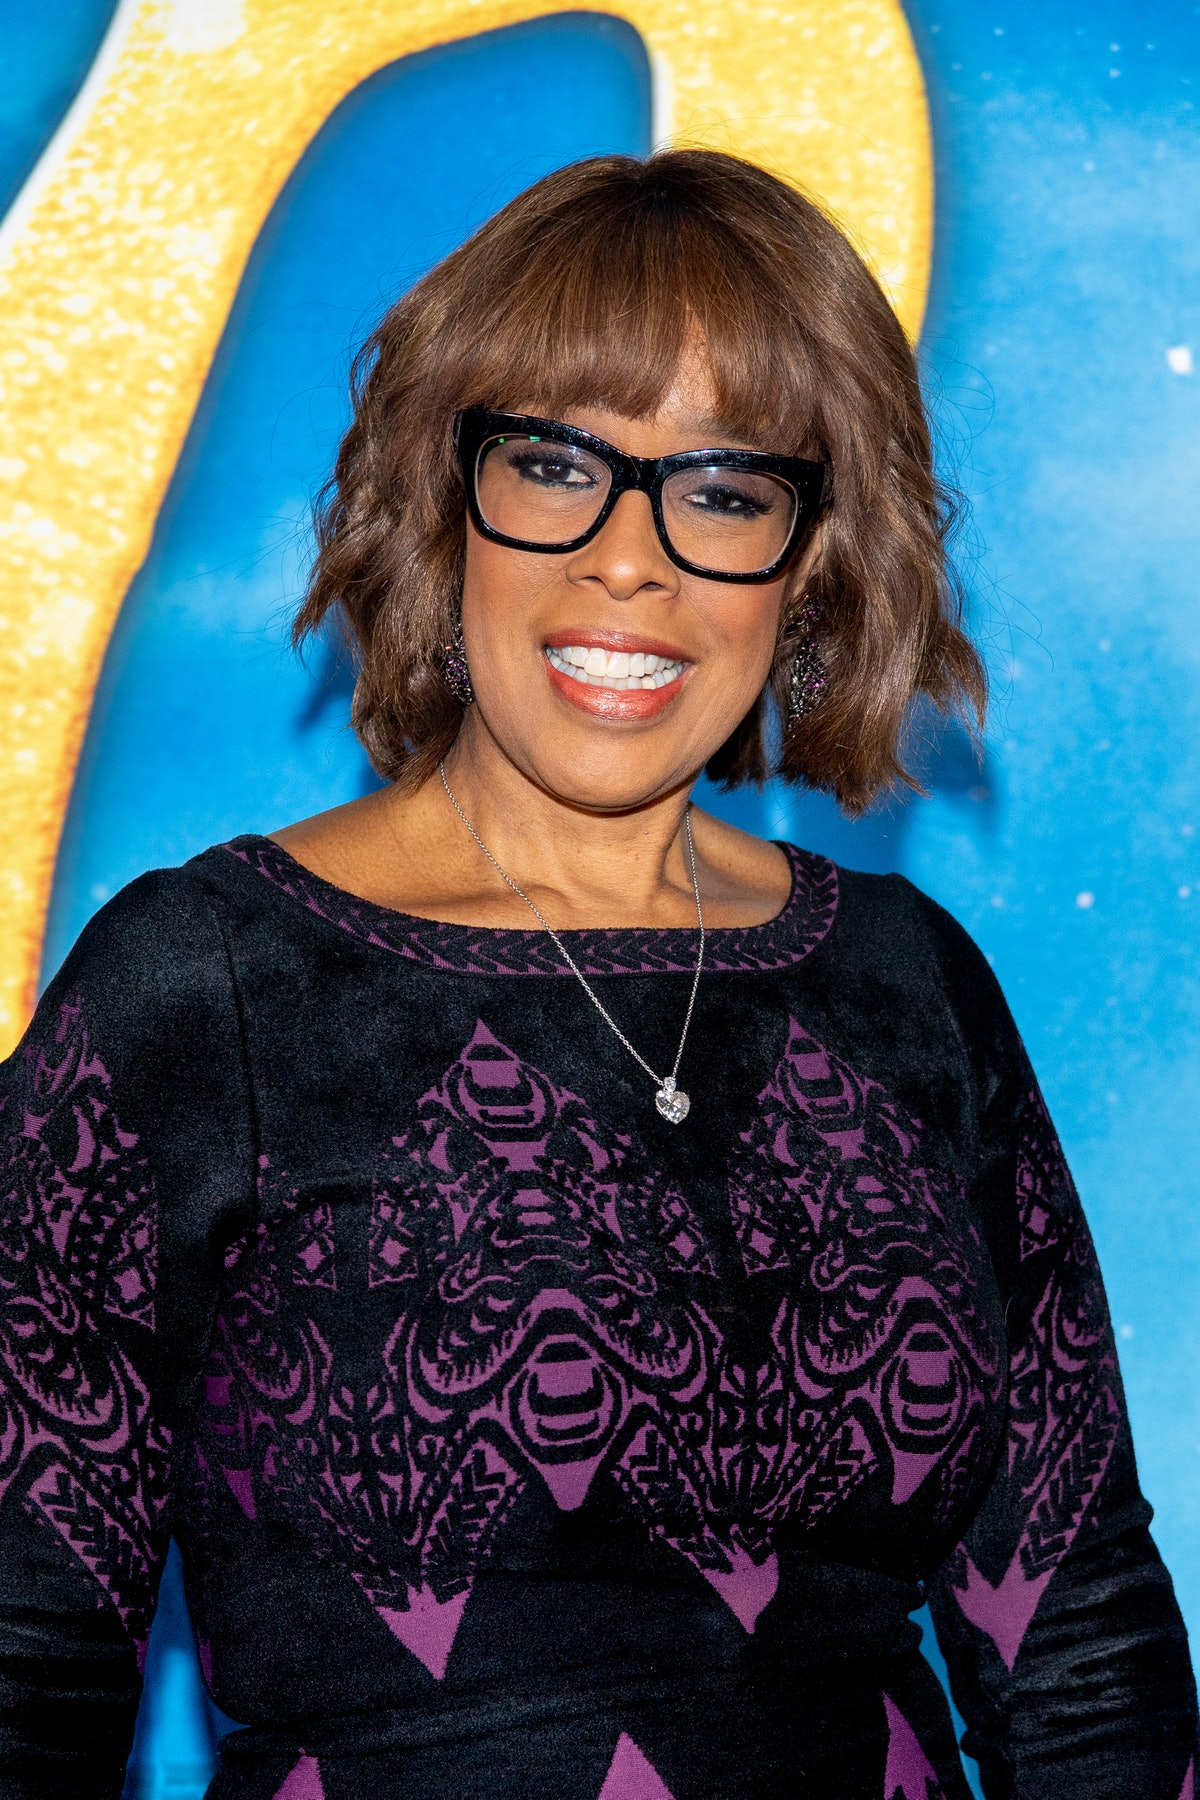 """NEW YORK, NEW YORK - DECEMBER 16: Gayle King attends the """"Cats"""" World Premiere at Alice Tully Hall, Lincoln Center on December 16, 2019 in New York City. (Photo by Roy Rochlin/FilmMagic)"""